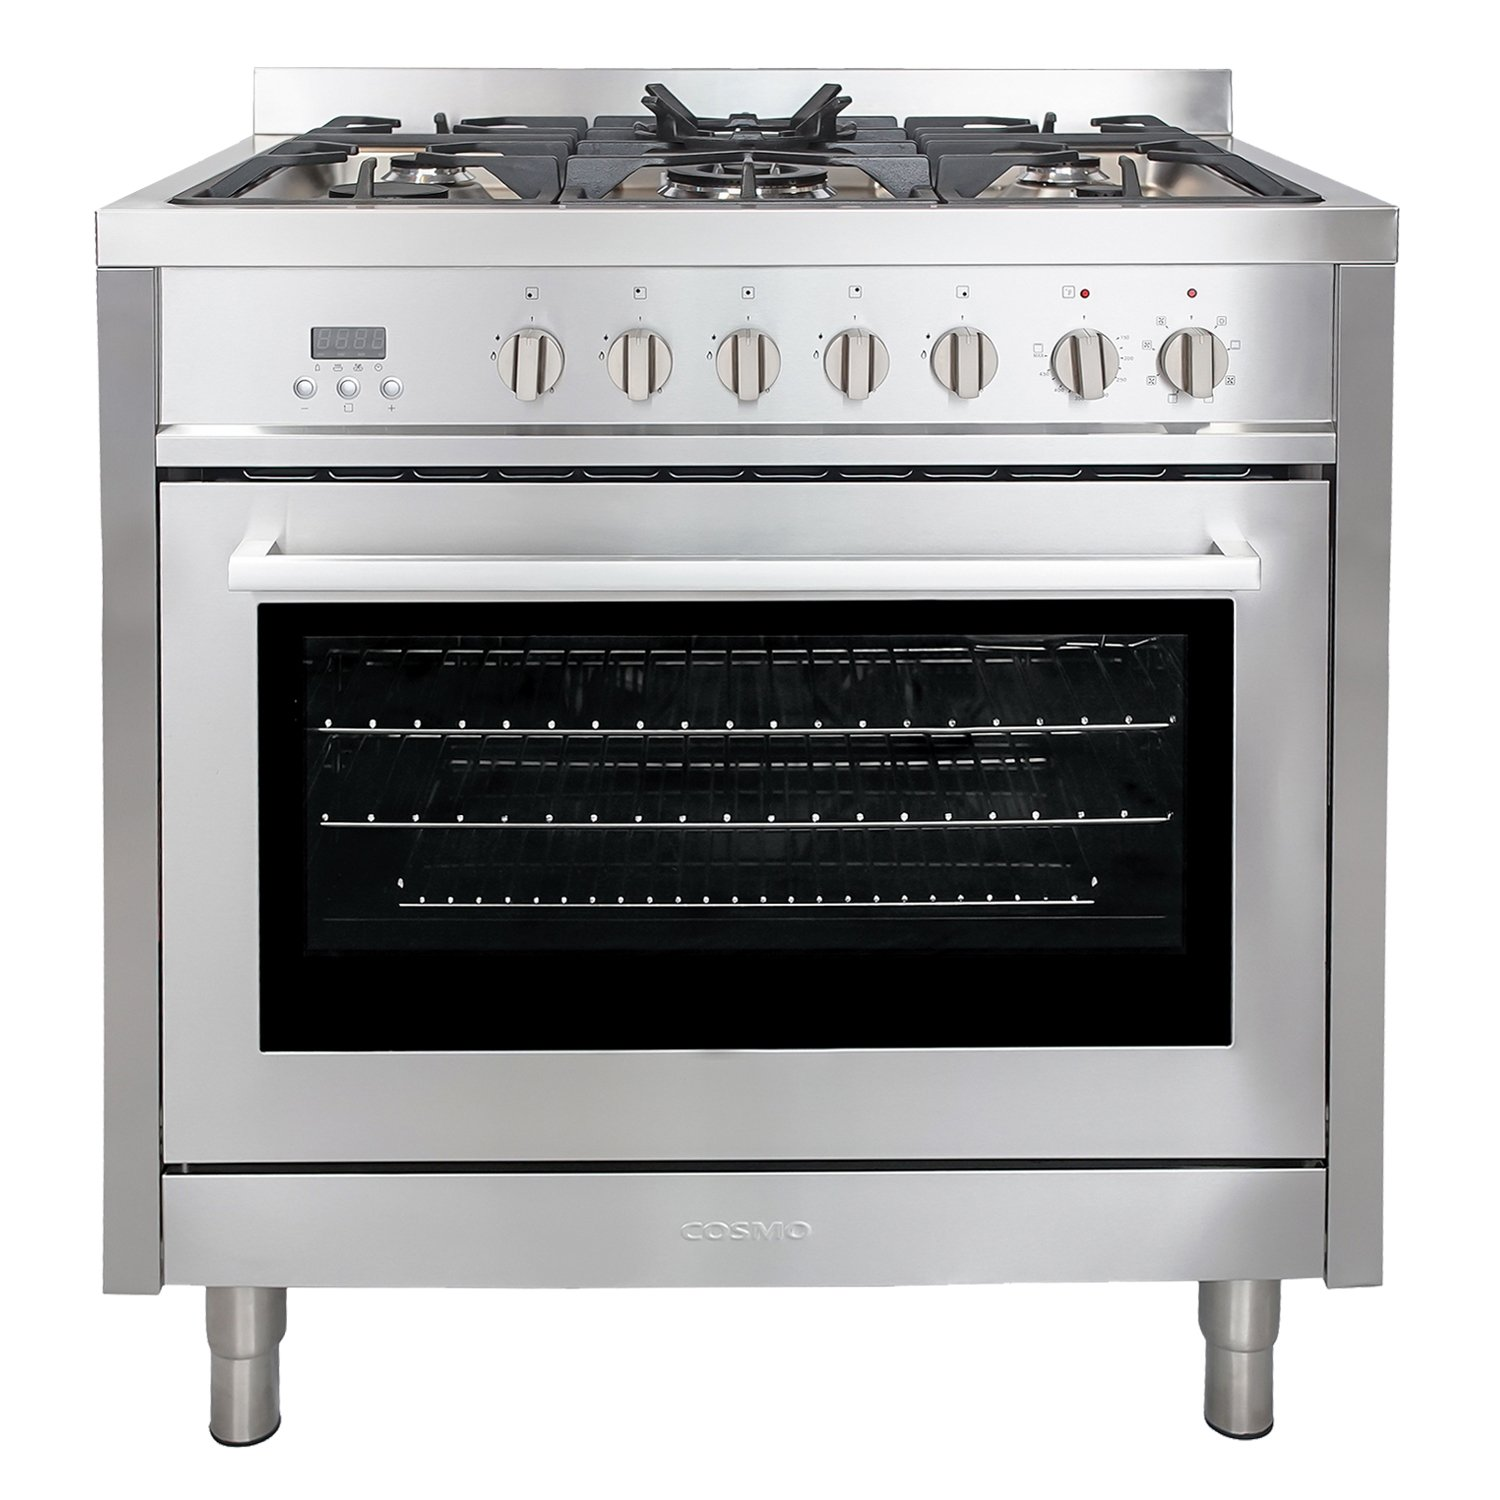 Cosmo F965 36-Inches Dual Fuel Gas Range with 3.8 cu. ft. Oven, 5 Burners, Convection Fan, Cast Iron Grates and Black Porcelain Oven Interior in Stainless Steel